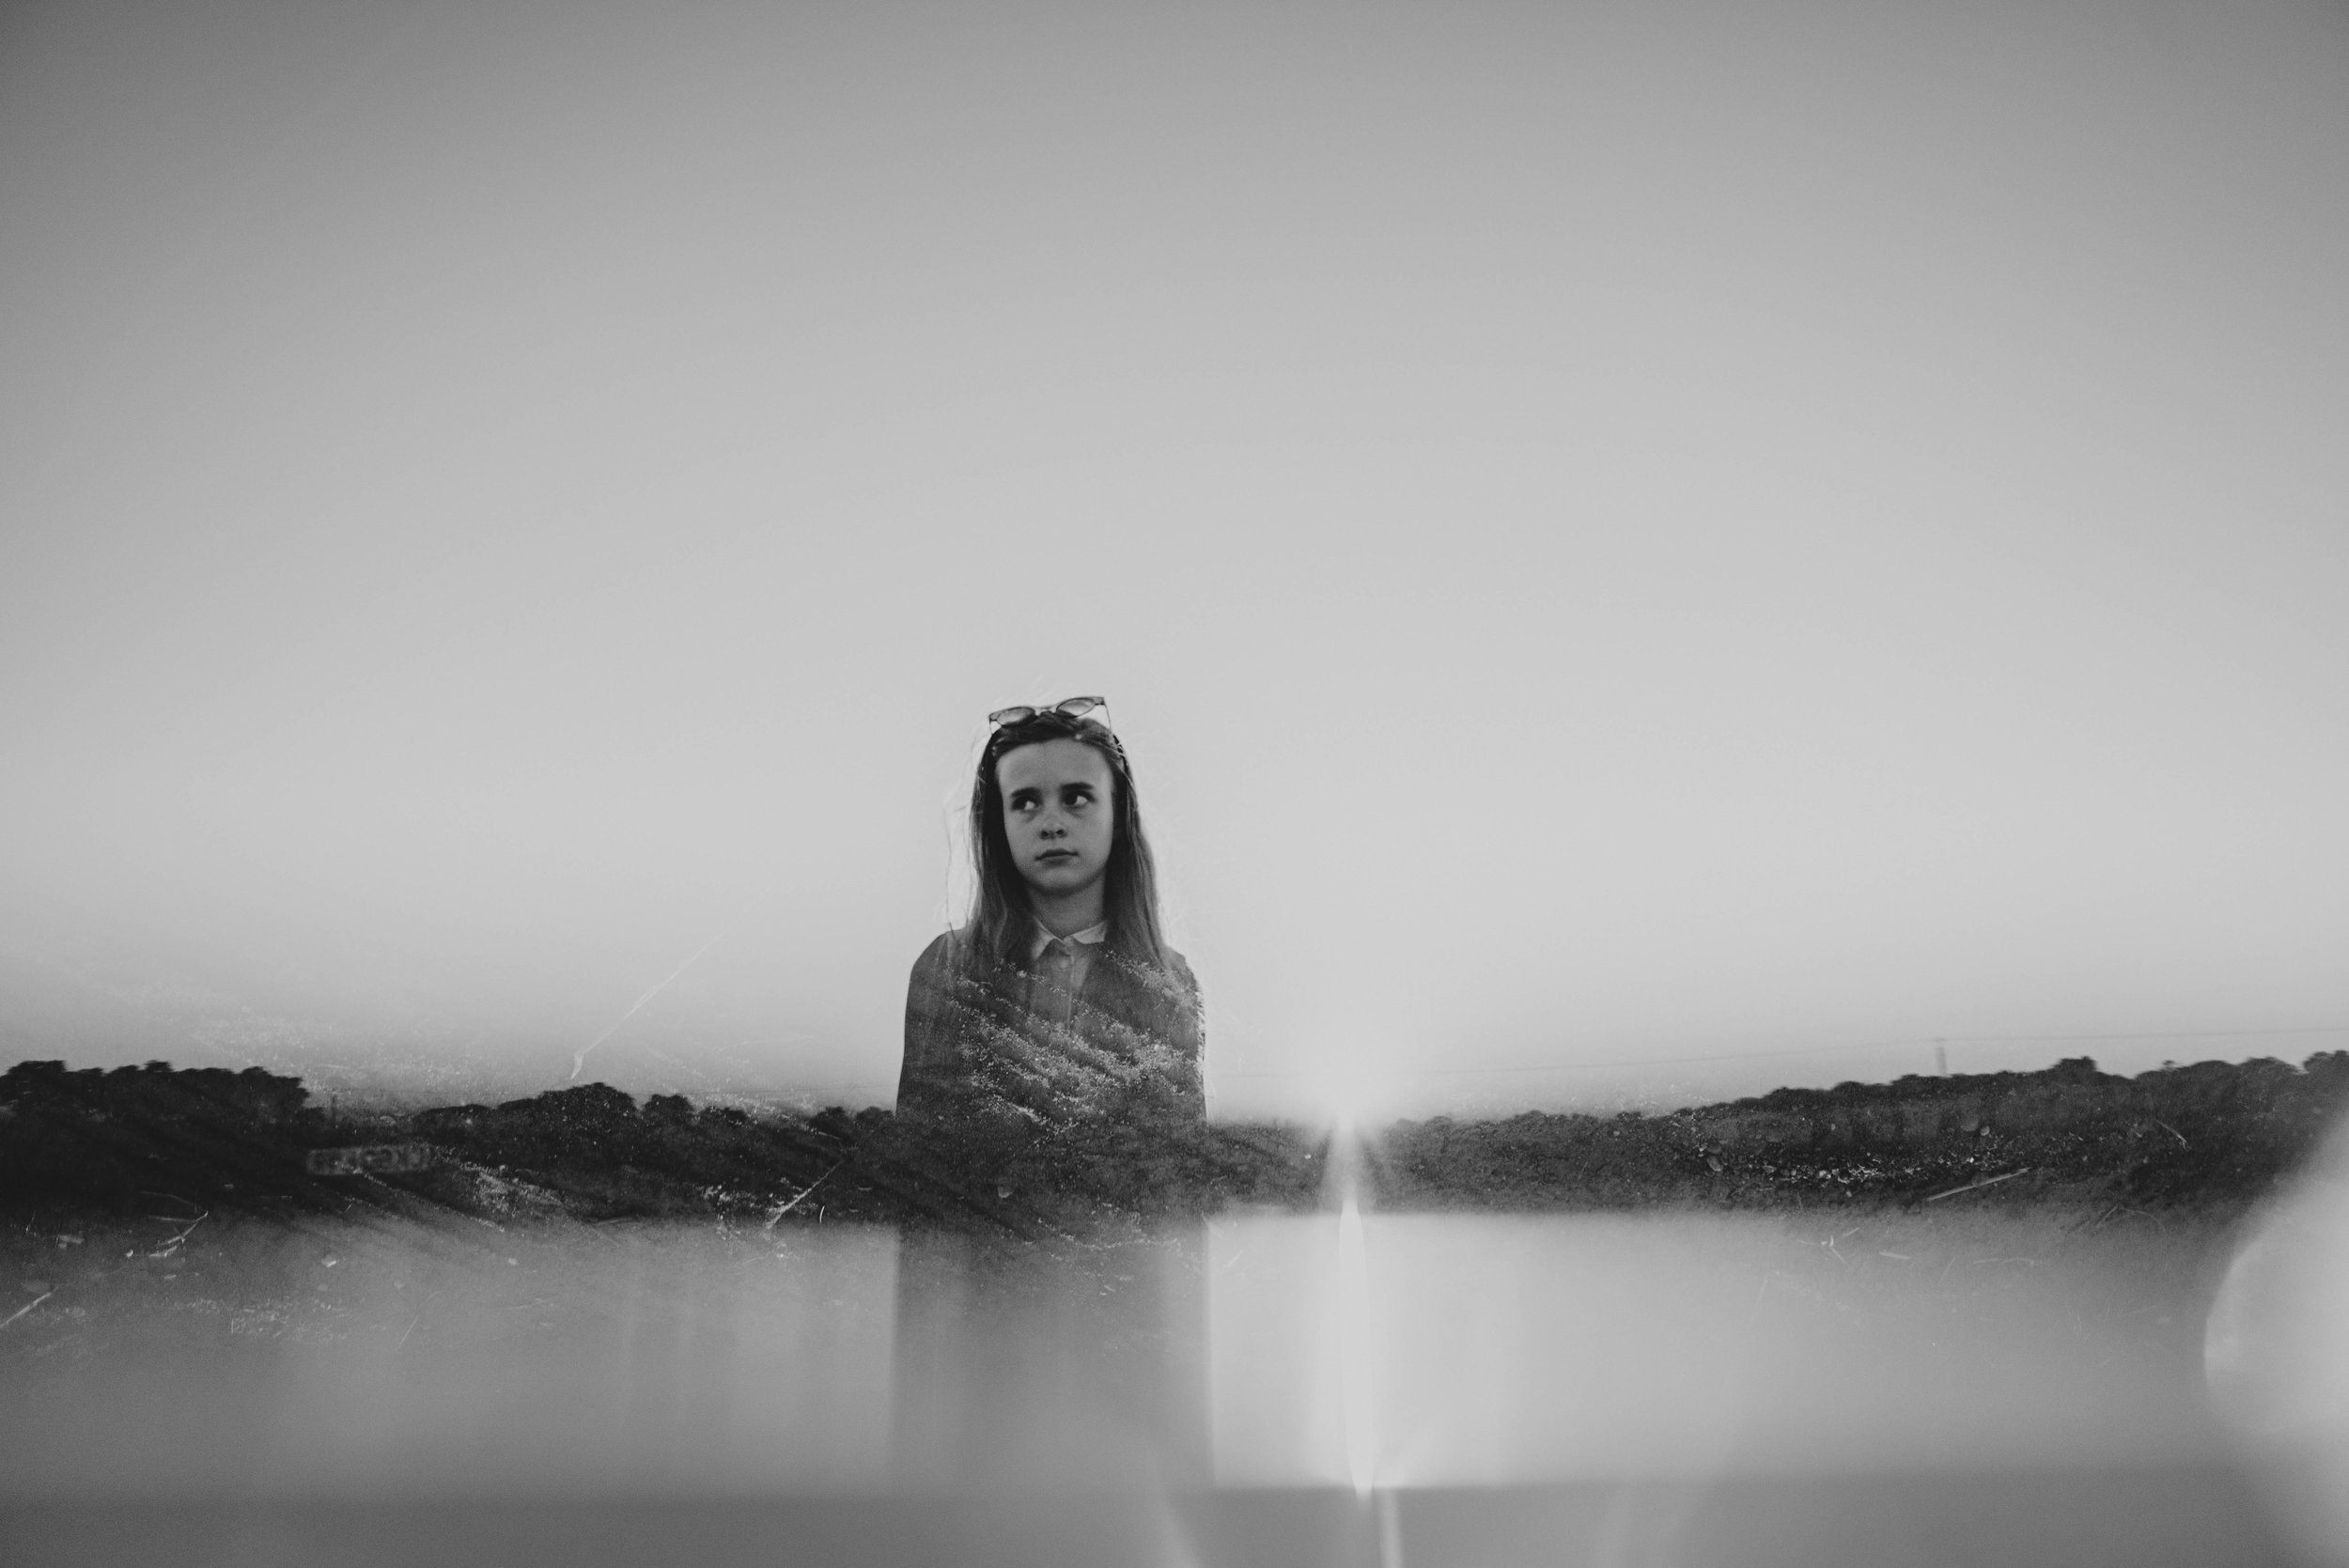 Young girl Prism reflection Essex UK Documentary Portrait Photographer